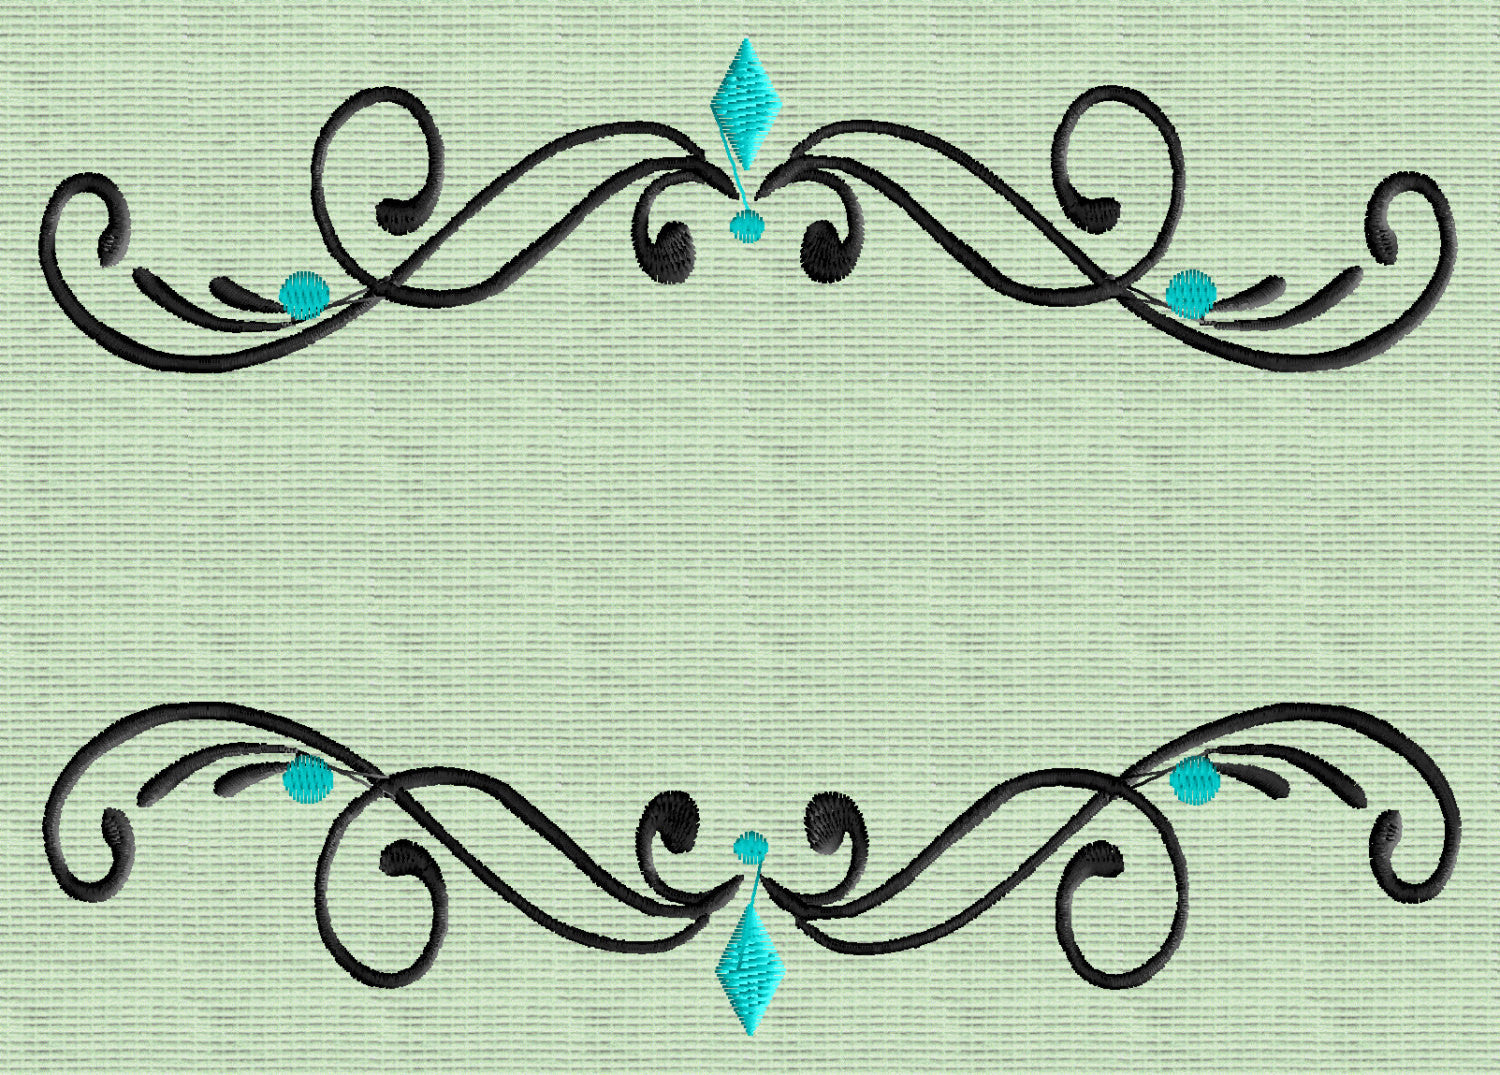 Pristina Font Frame Monogram Embroidery Design -Font not included- EMBROIDERY DESIGN FILE -Instant download- Dst Hus Jef Pes Exp Vp3 formats